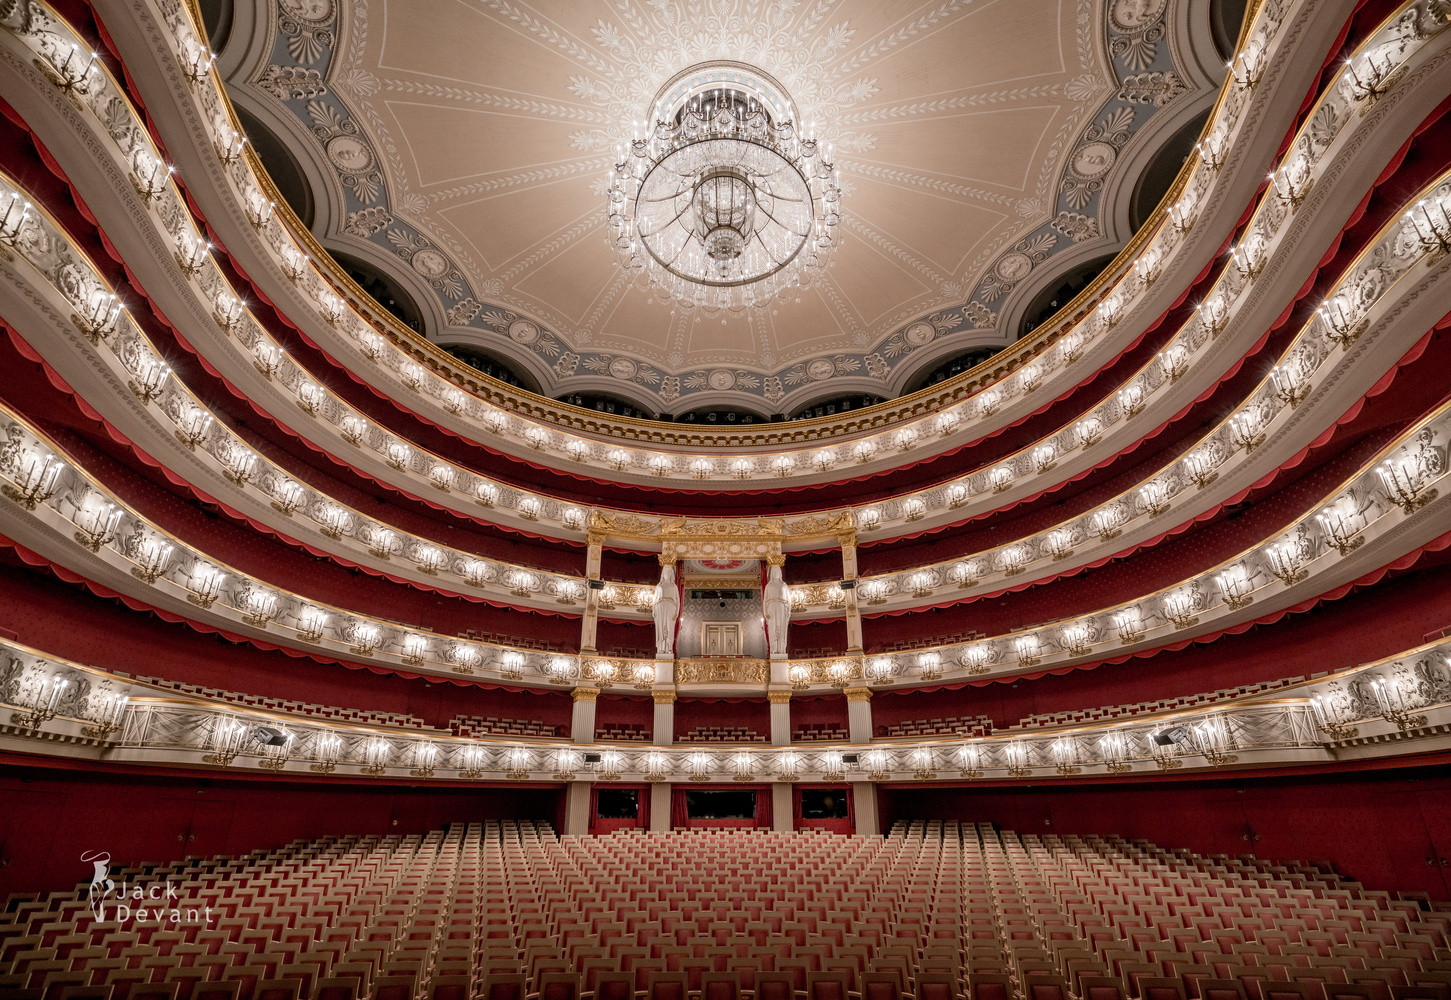 Nationaltheater (National Theatre) interior by Jack Devant